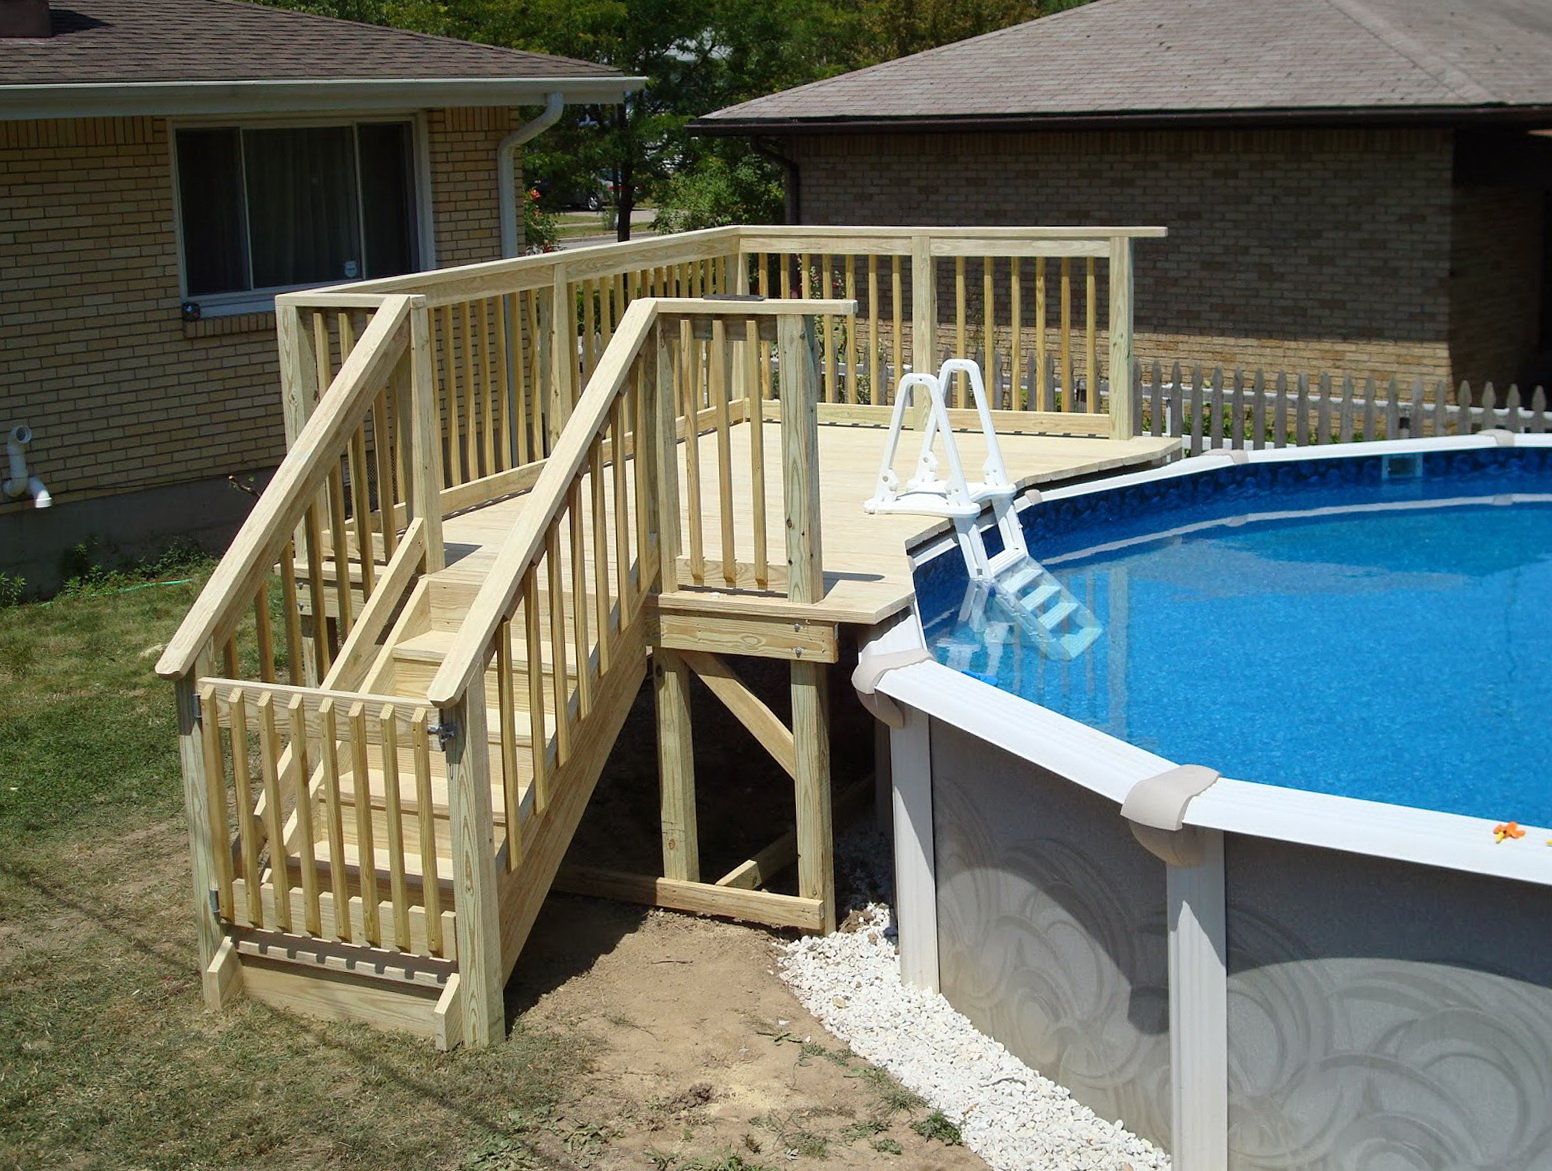 Small deck plans for above ground pools home design ideas for Above ground pool decks for small yards